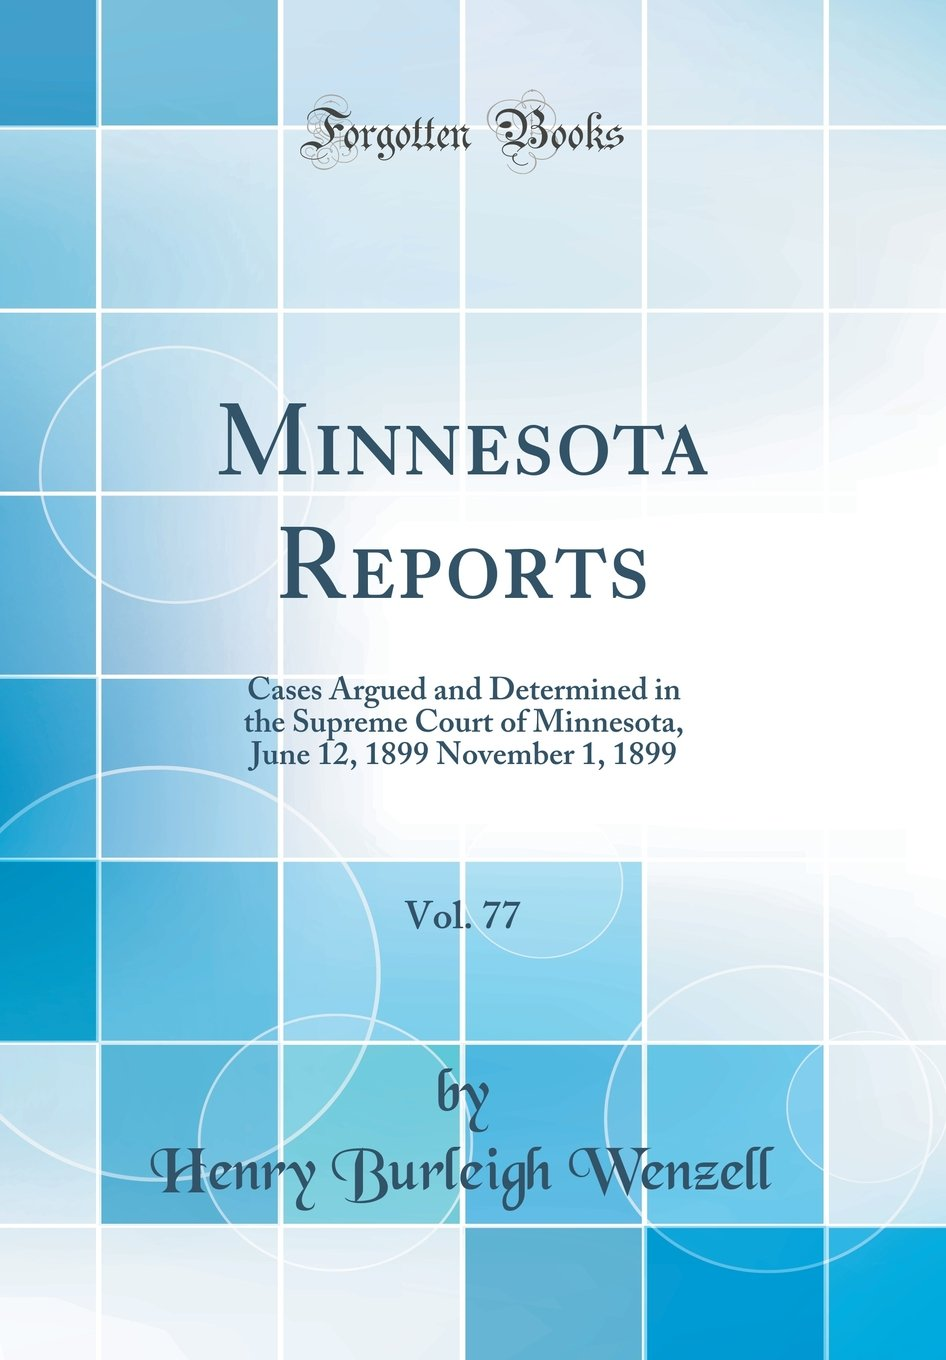 Download Minnesota Reports, Vol. 77: Cases Argued and Determined in the Supreme Court of Minnesota, June 12, 1899 November 1, 1899 (Classic Reprint) ebook